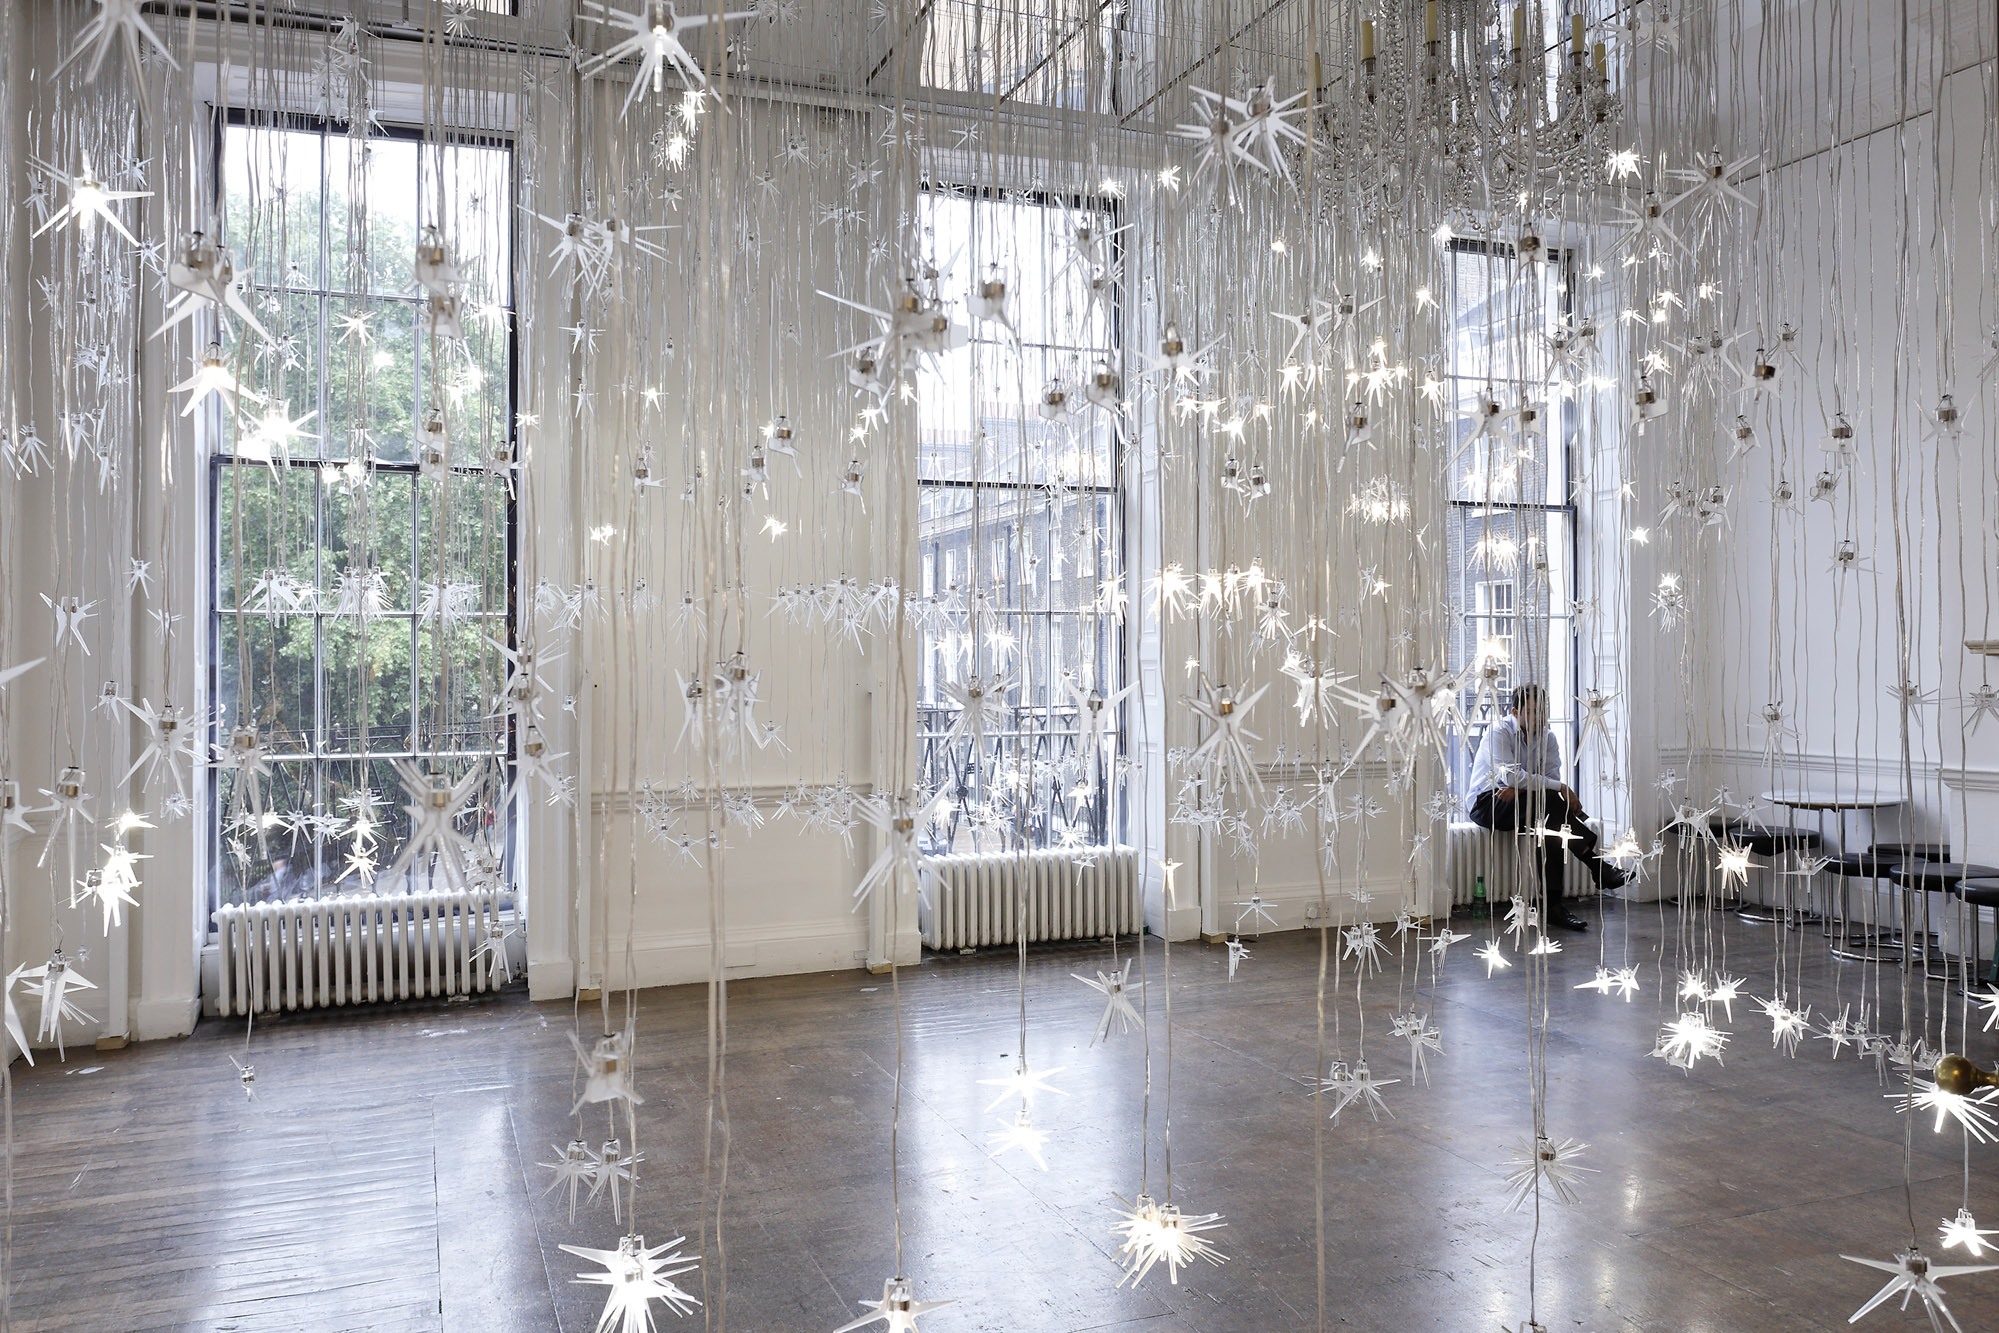 LightHive (subtitled U201cluminous Architectural Surveillanceu201d) Was An  Interactive Installation At The Architectural Association School Of  Architecture, London, ...